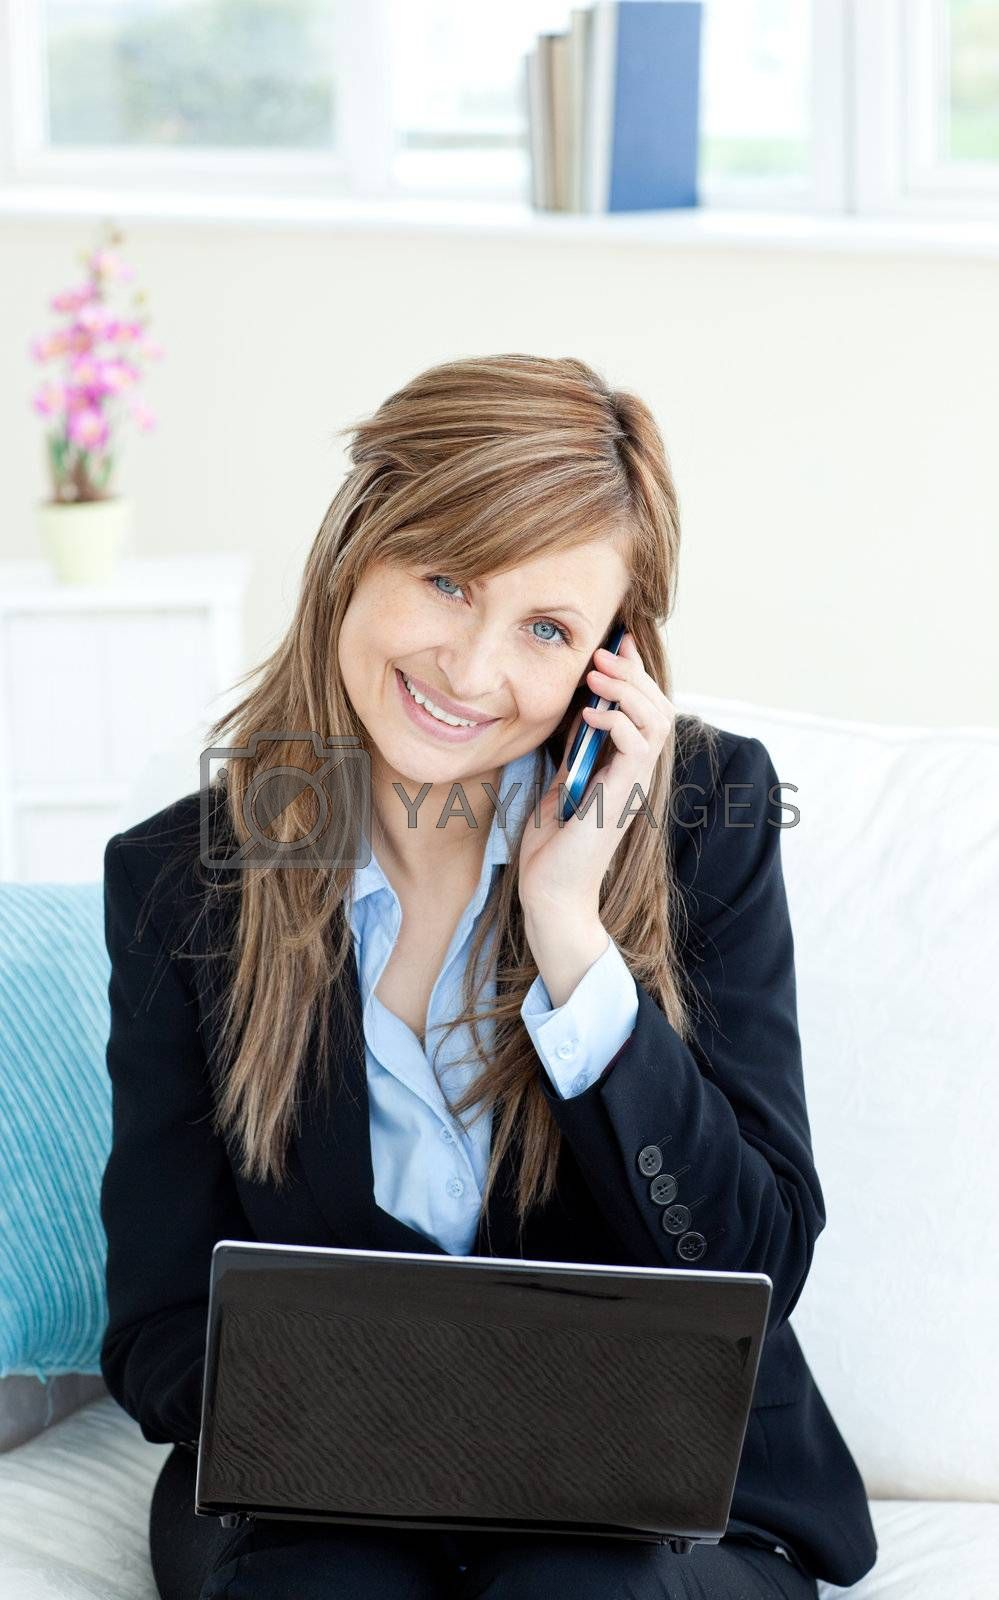 Beautiful confident businesswoman using a mobile phone and a laptop in the office